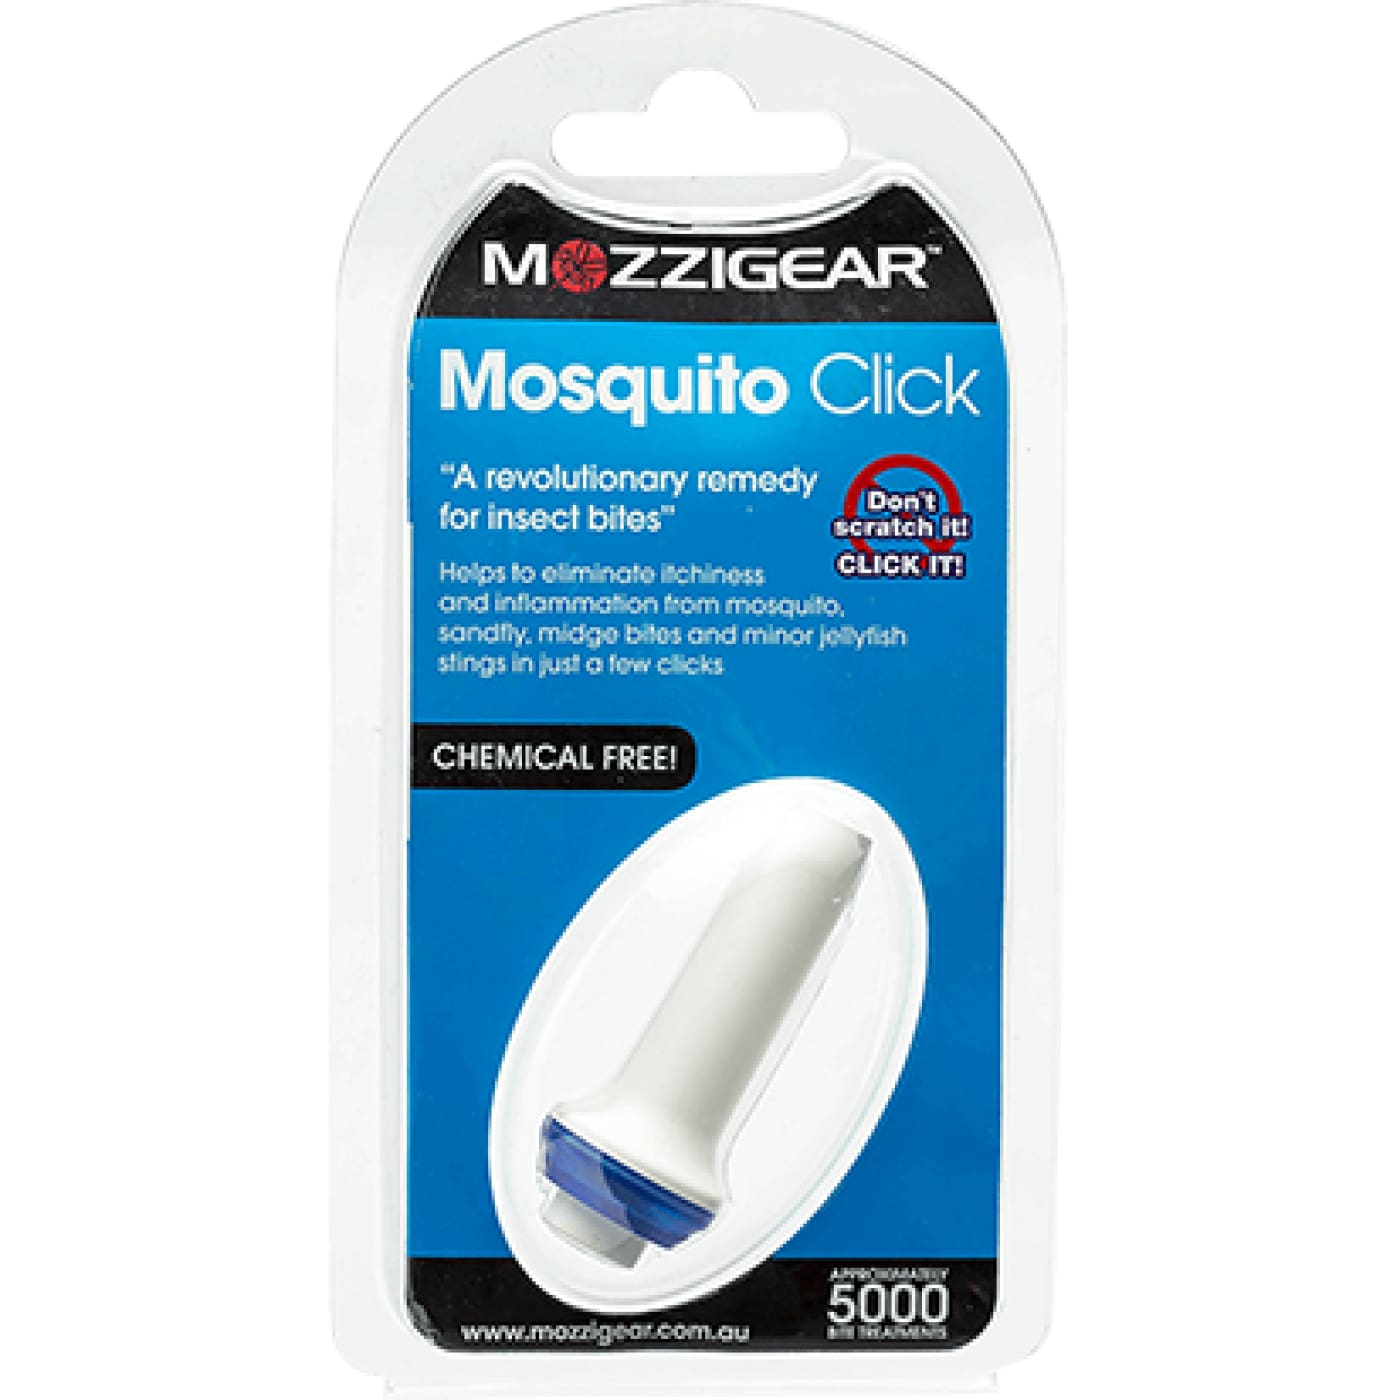 Mozzi Gear Mosquito Click - ON THE GO - INSECT REPELLENT